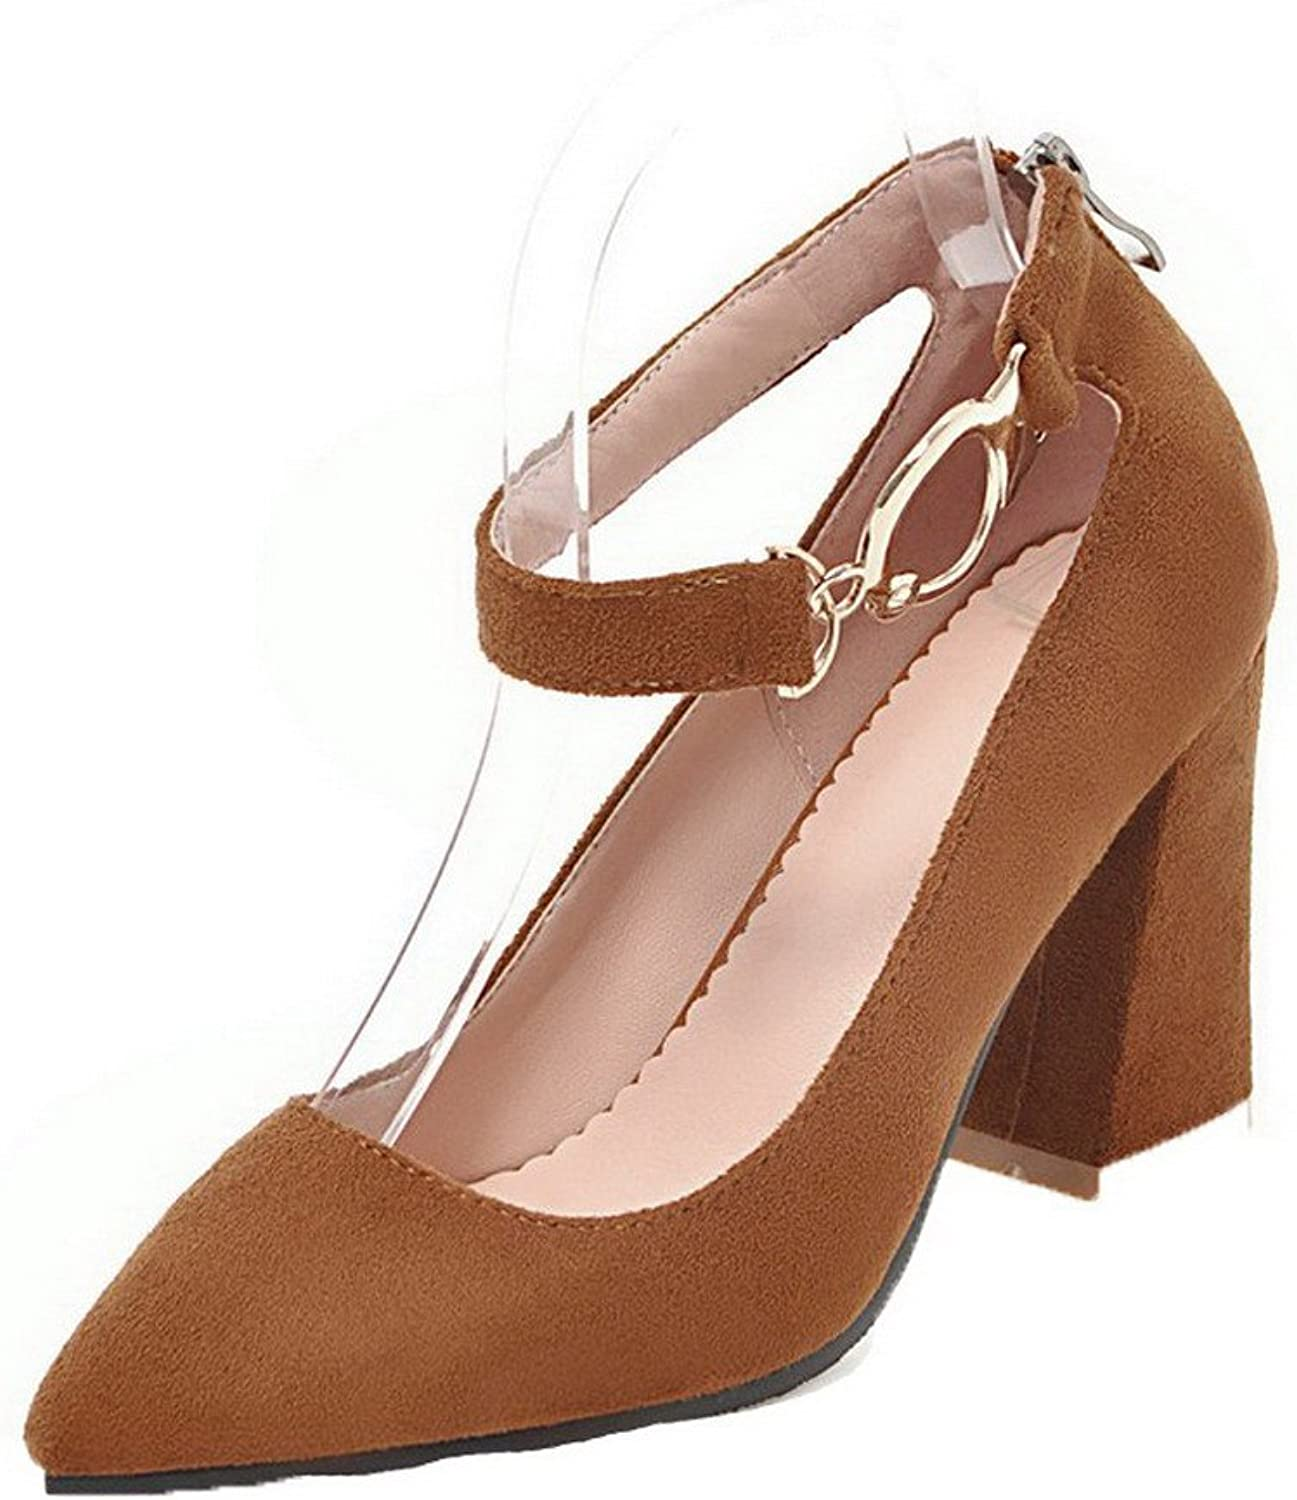 WeenFashion Women's Solid Buckle Pointed-Toe High-Heels Pumps-shoes